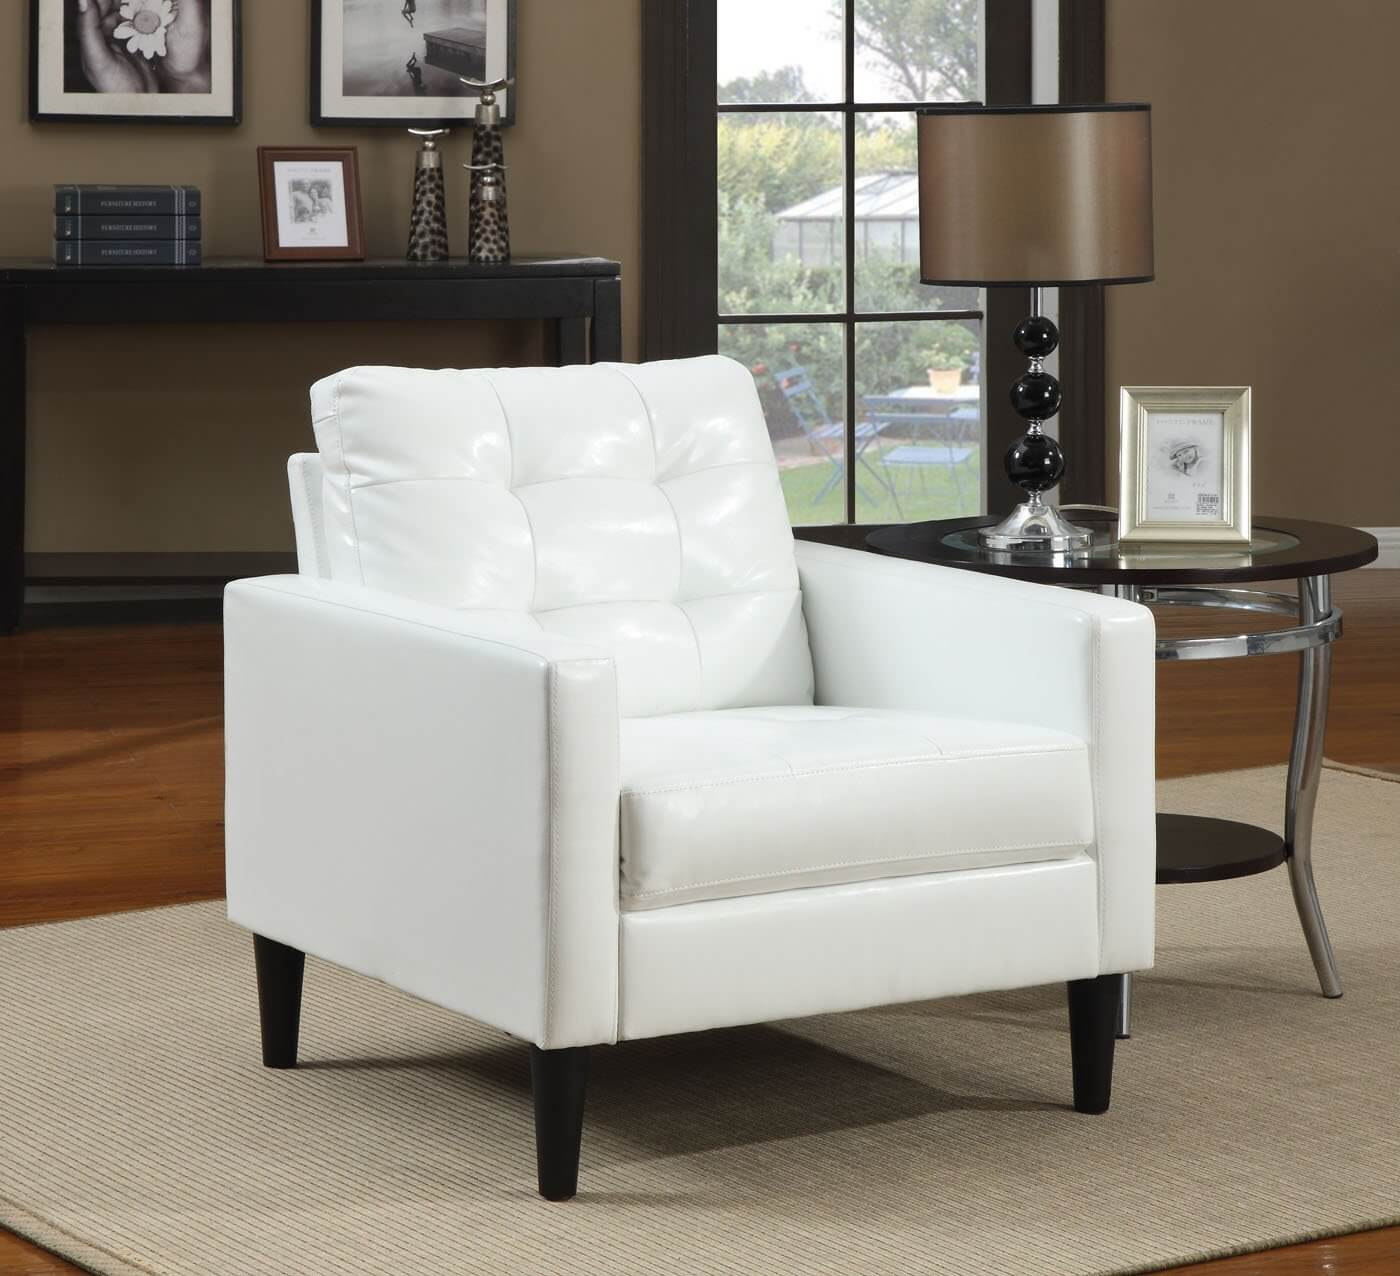 Balin collection accent chair from acme features stuffed cushion back in polyurethane faux white leather